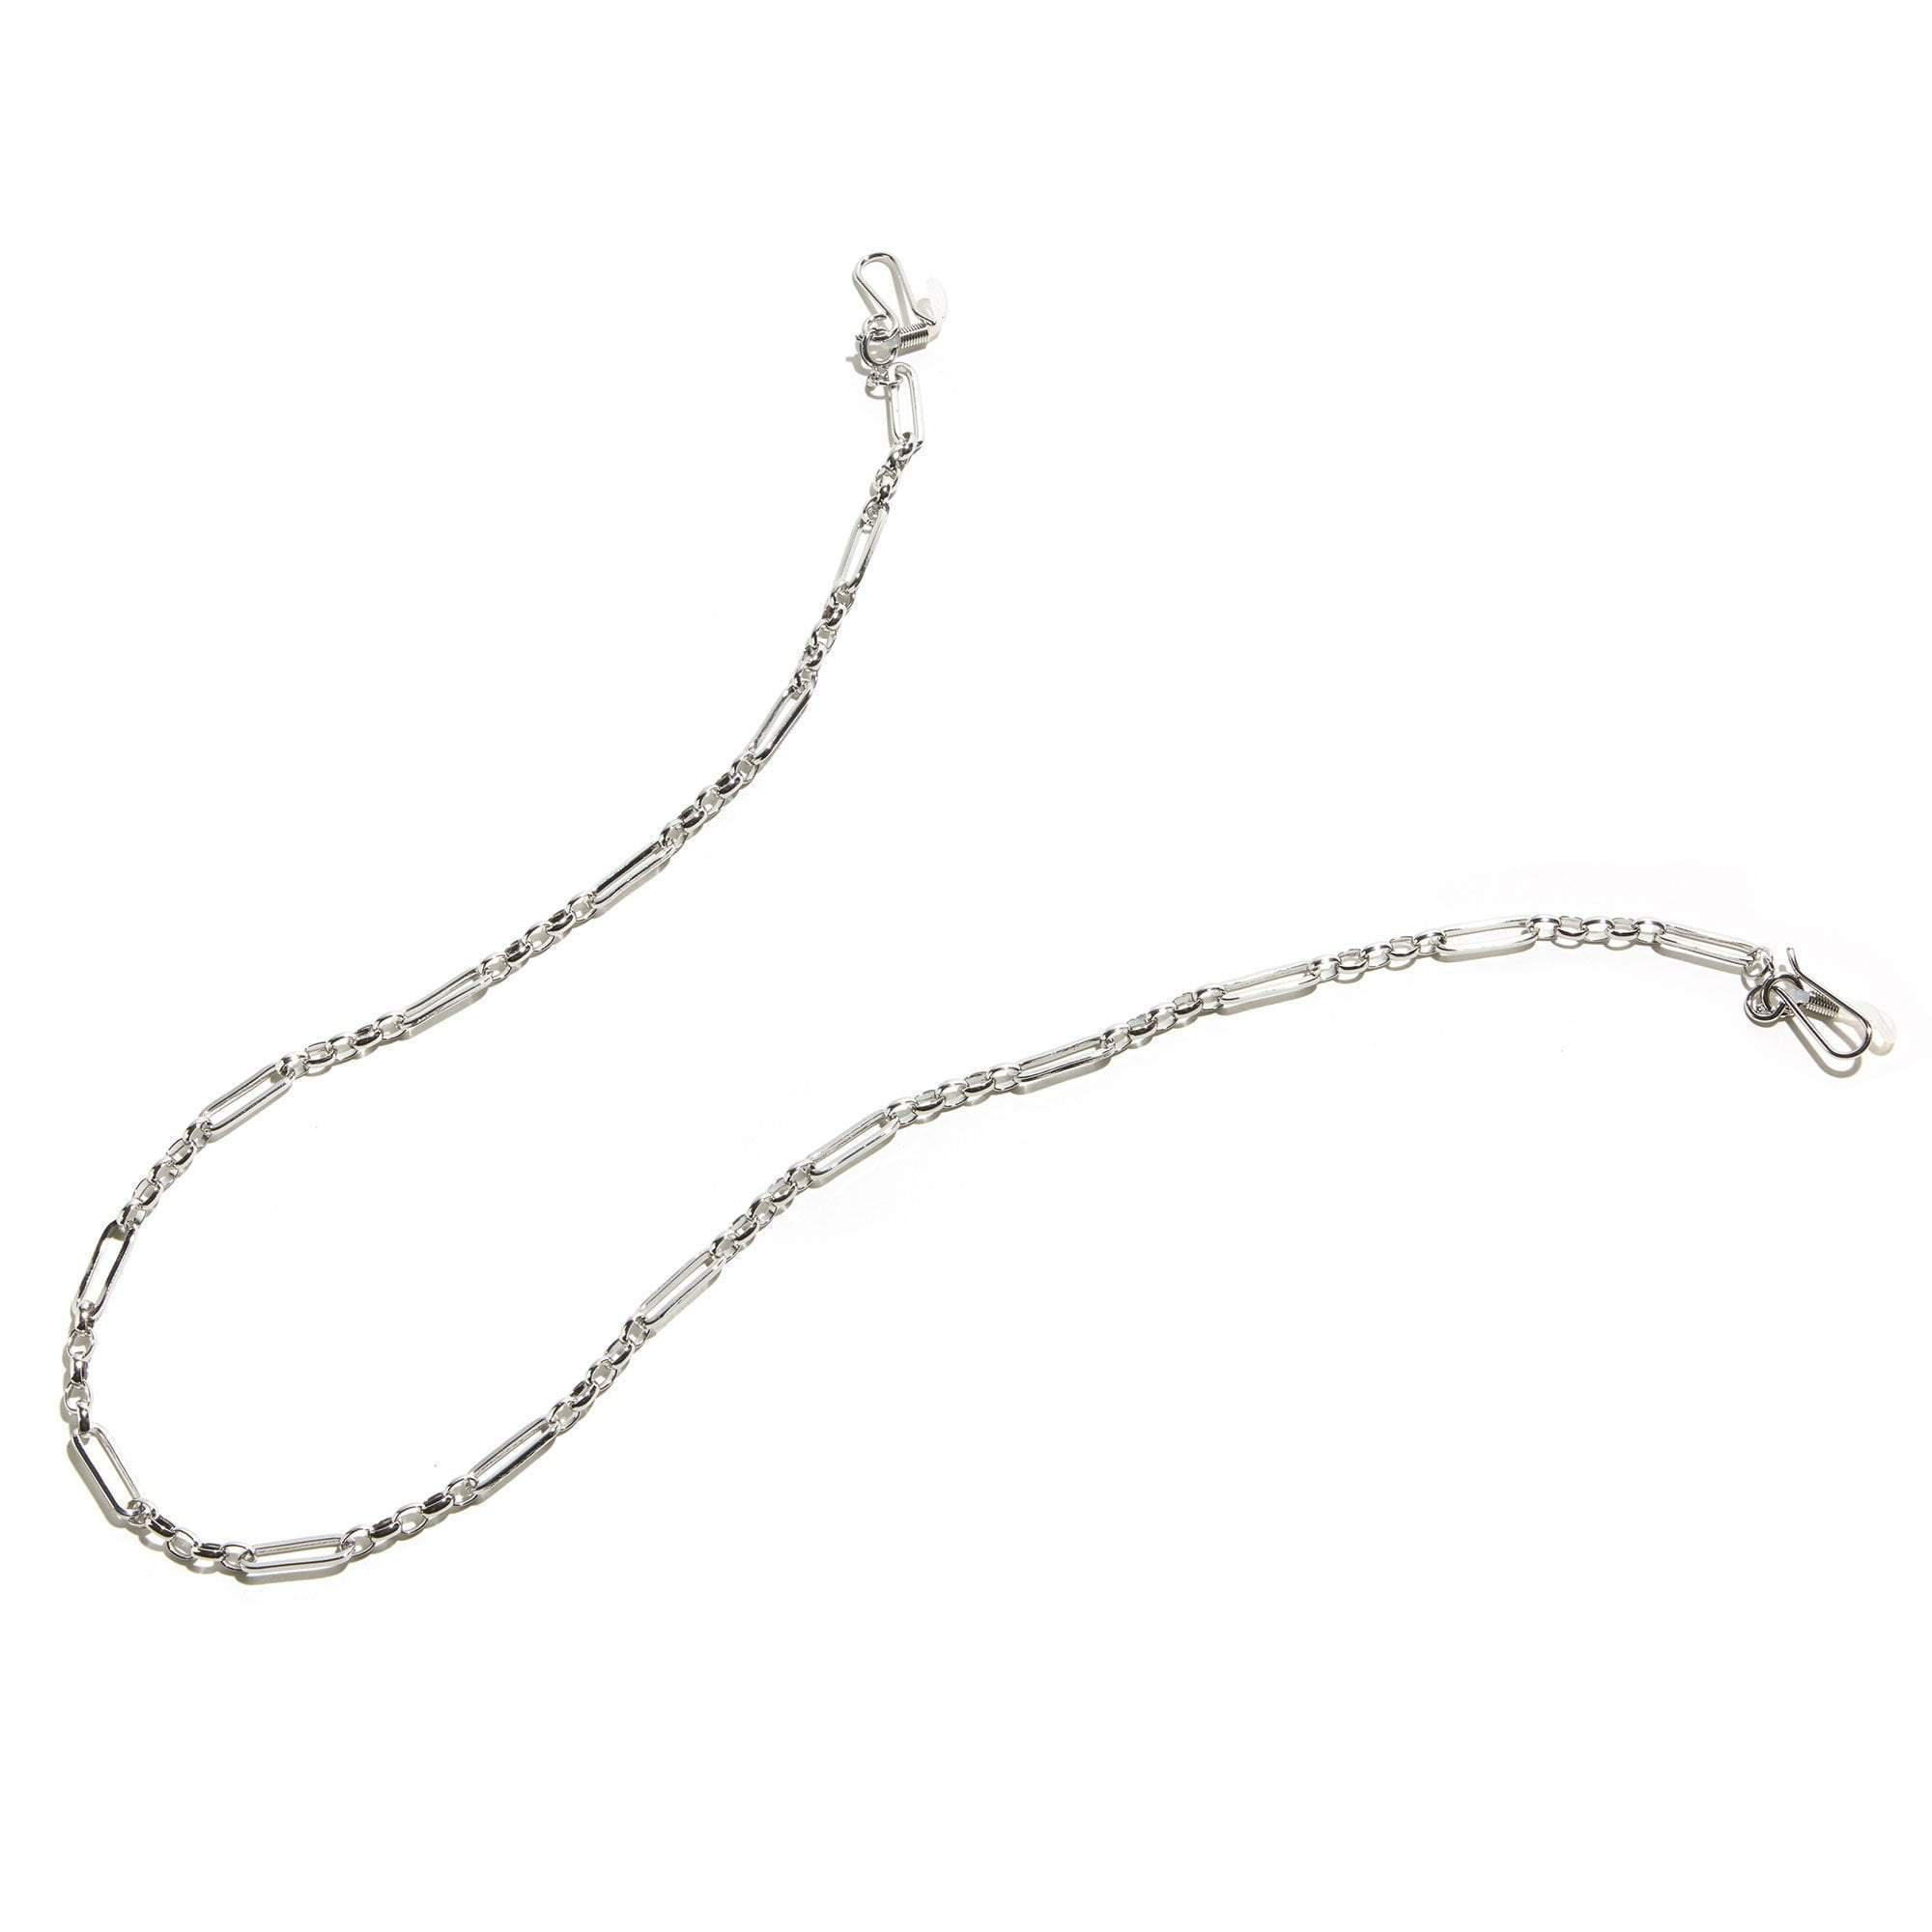 SILVER LONG LINK SUNGLASS AND FACE MASK CHAIN